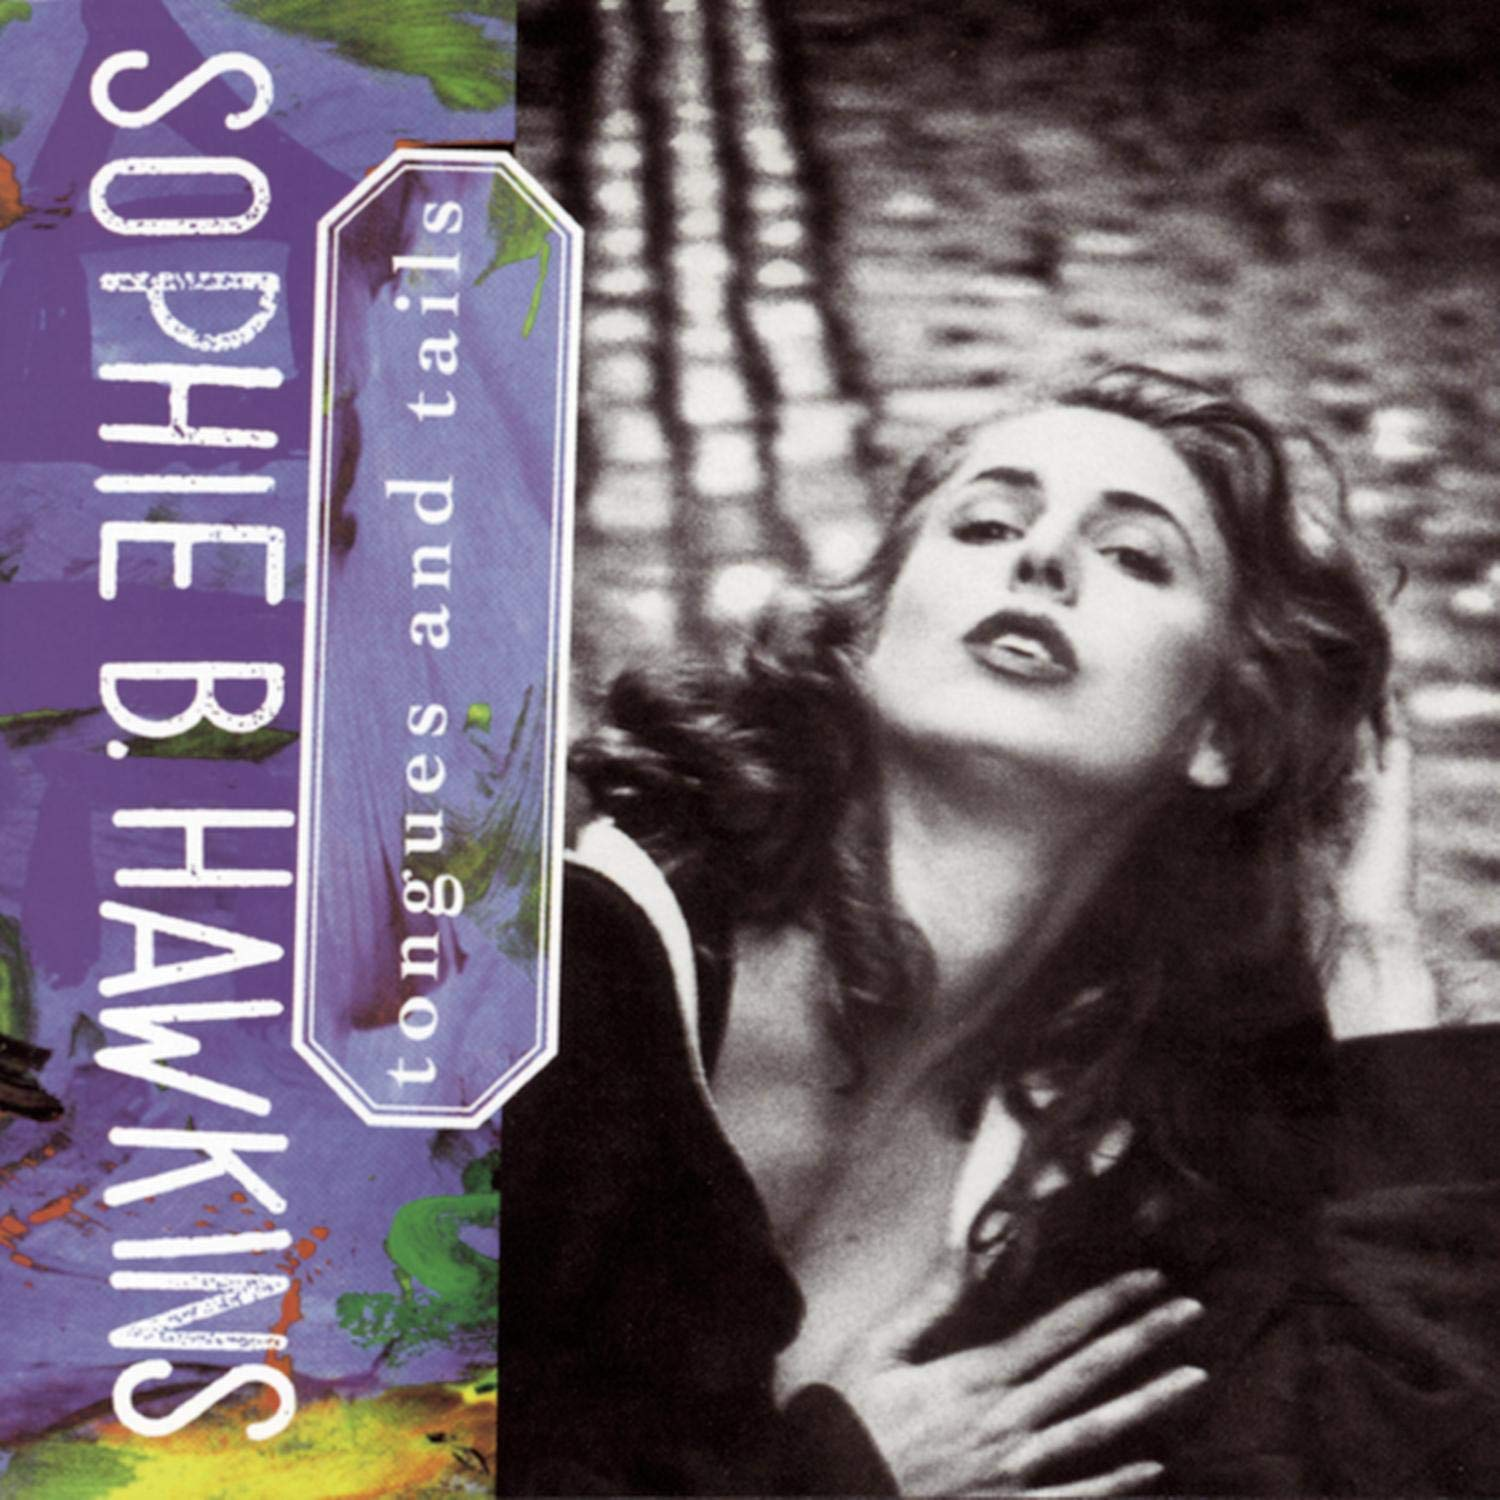 Sophie B. Hawkins, Tongues & Tails